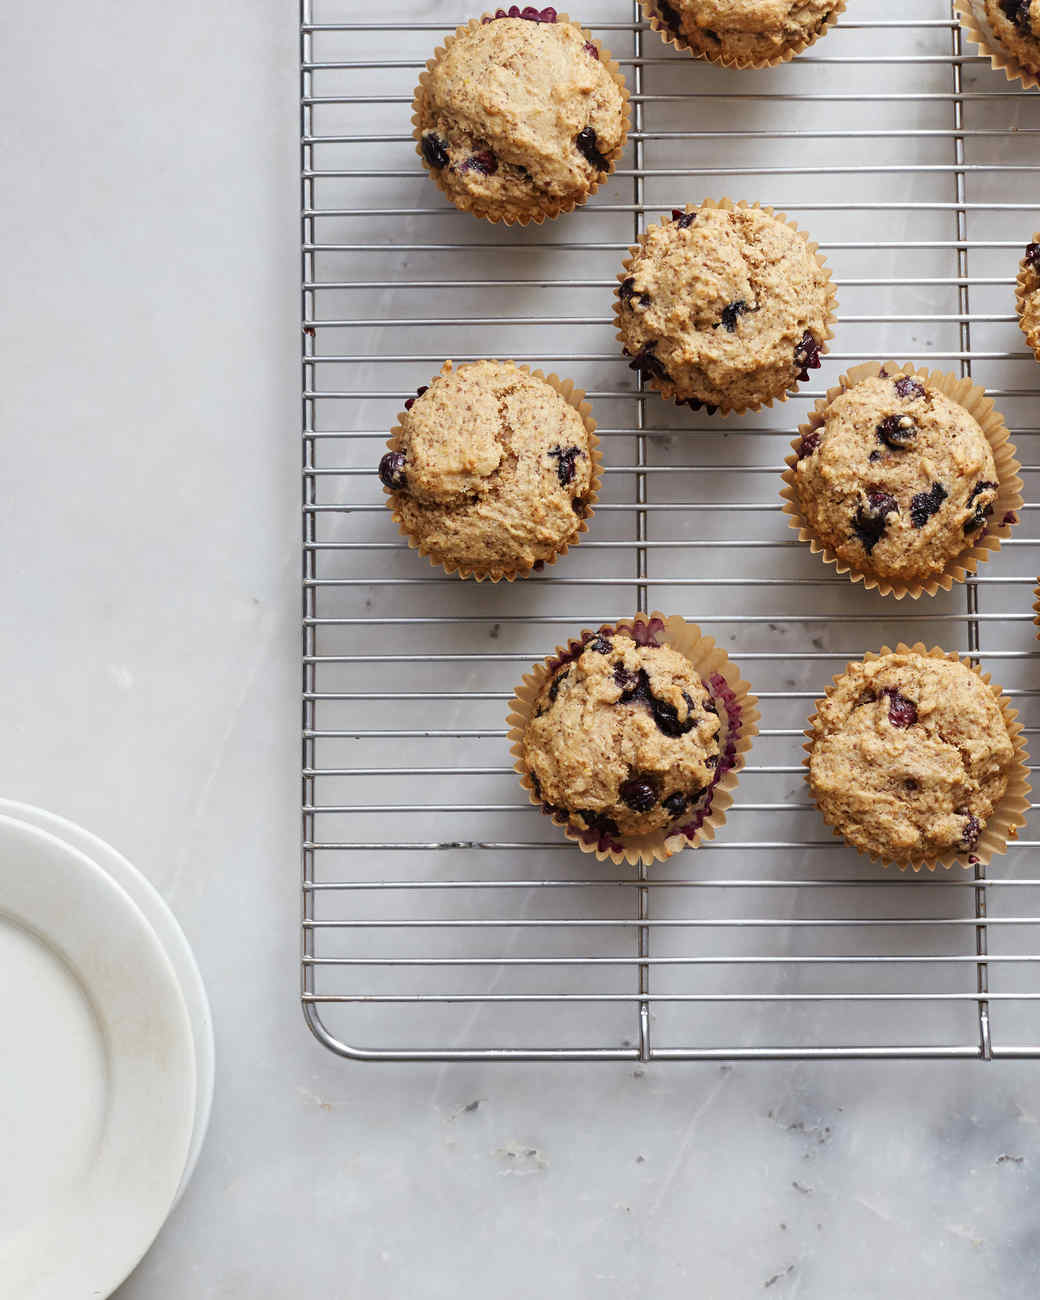 Looking for a Healthy Vegan Breakfast? Try These Whole-Grain Blueberry Muffins!